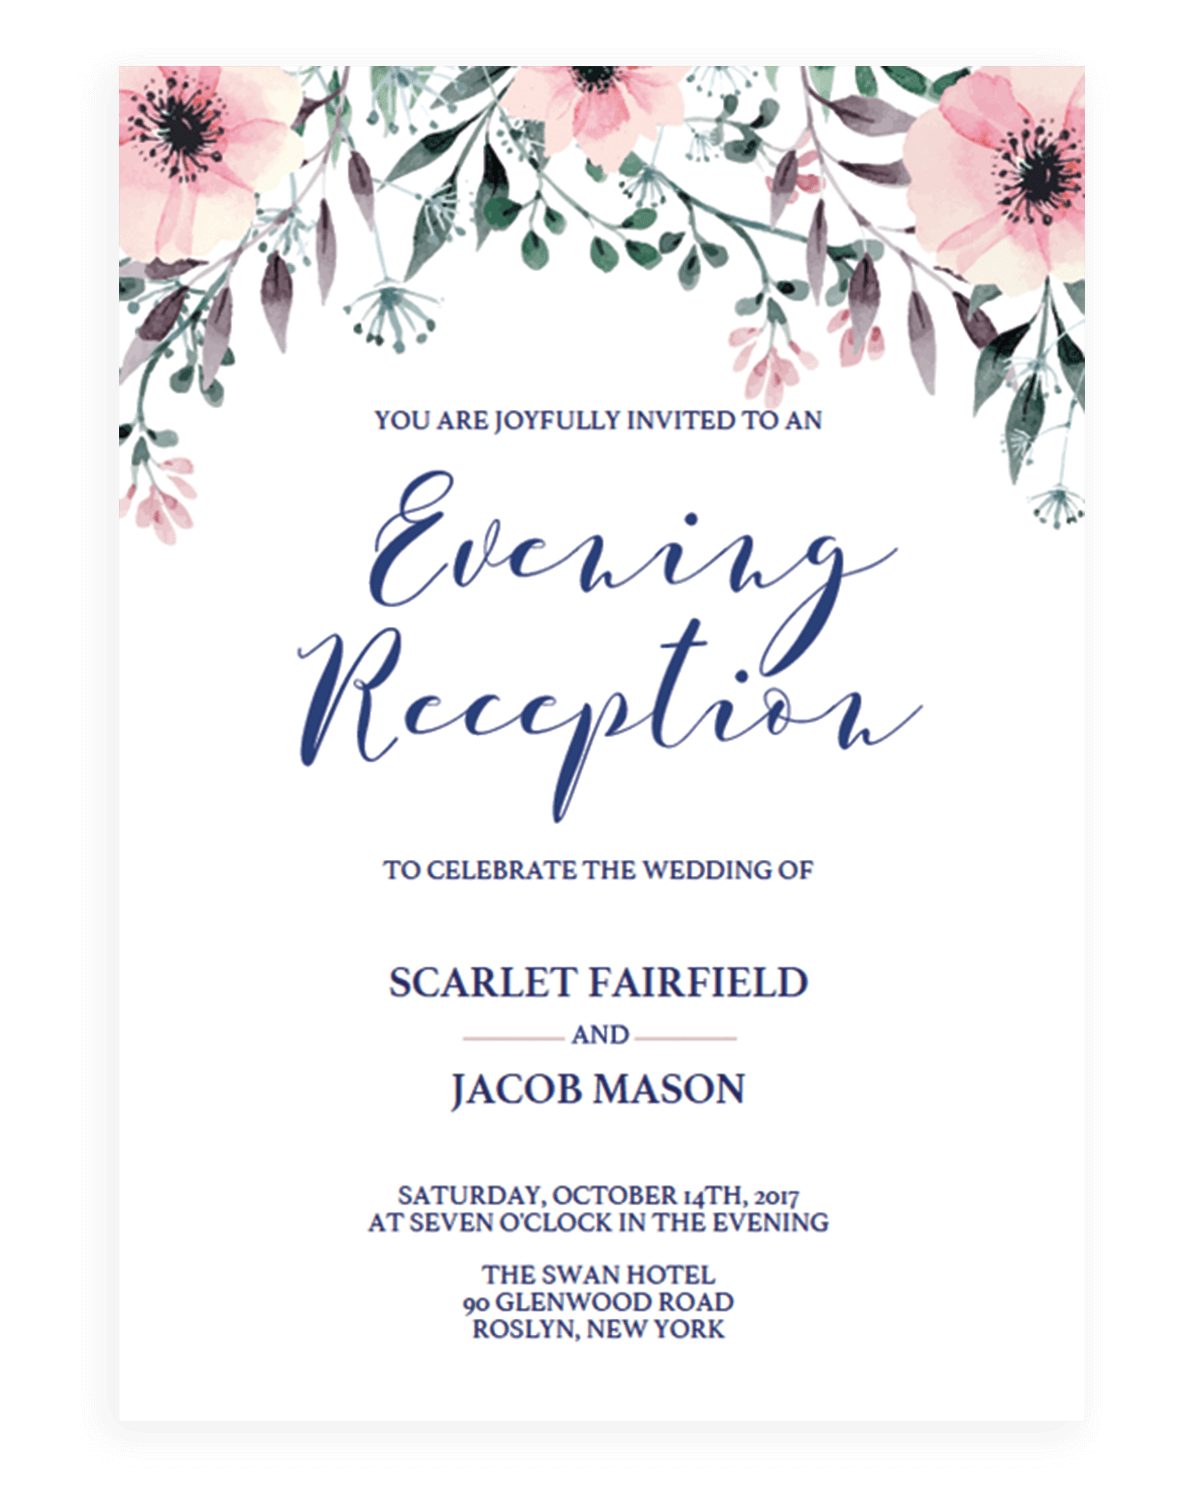 Wedding evening reception invitations instant downloads floral wedding reception invitation template by papersizzle monicamarmolfo Gallery